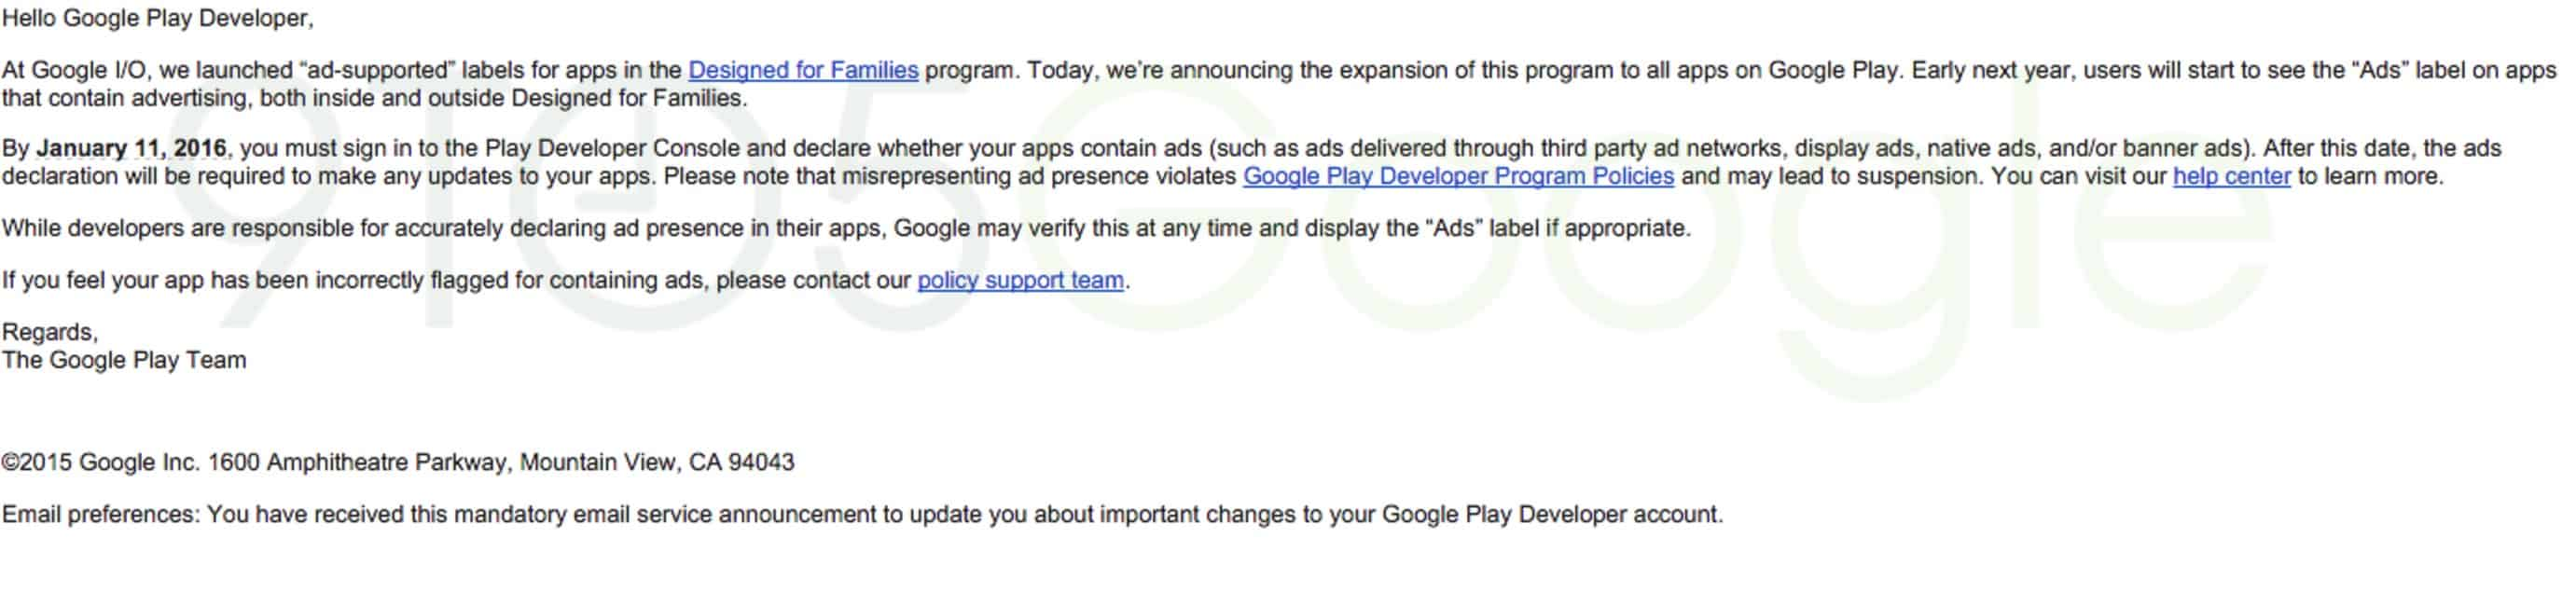 Play Store ads email